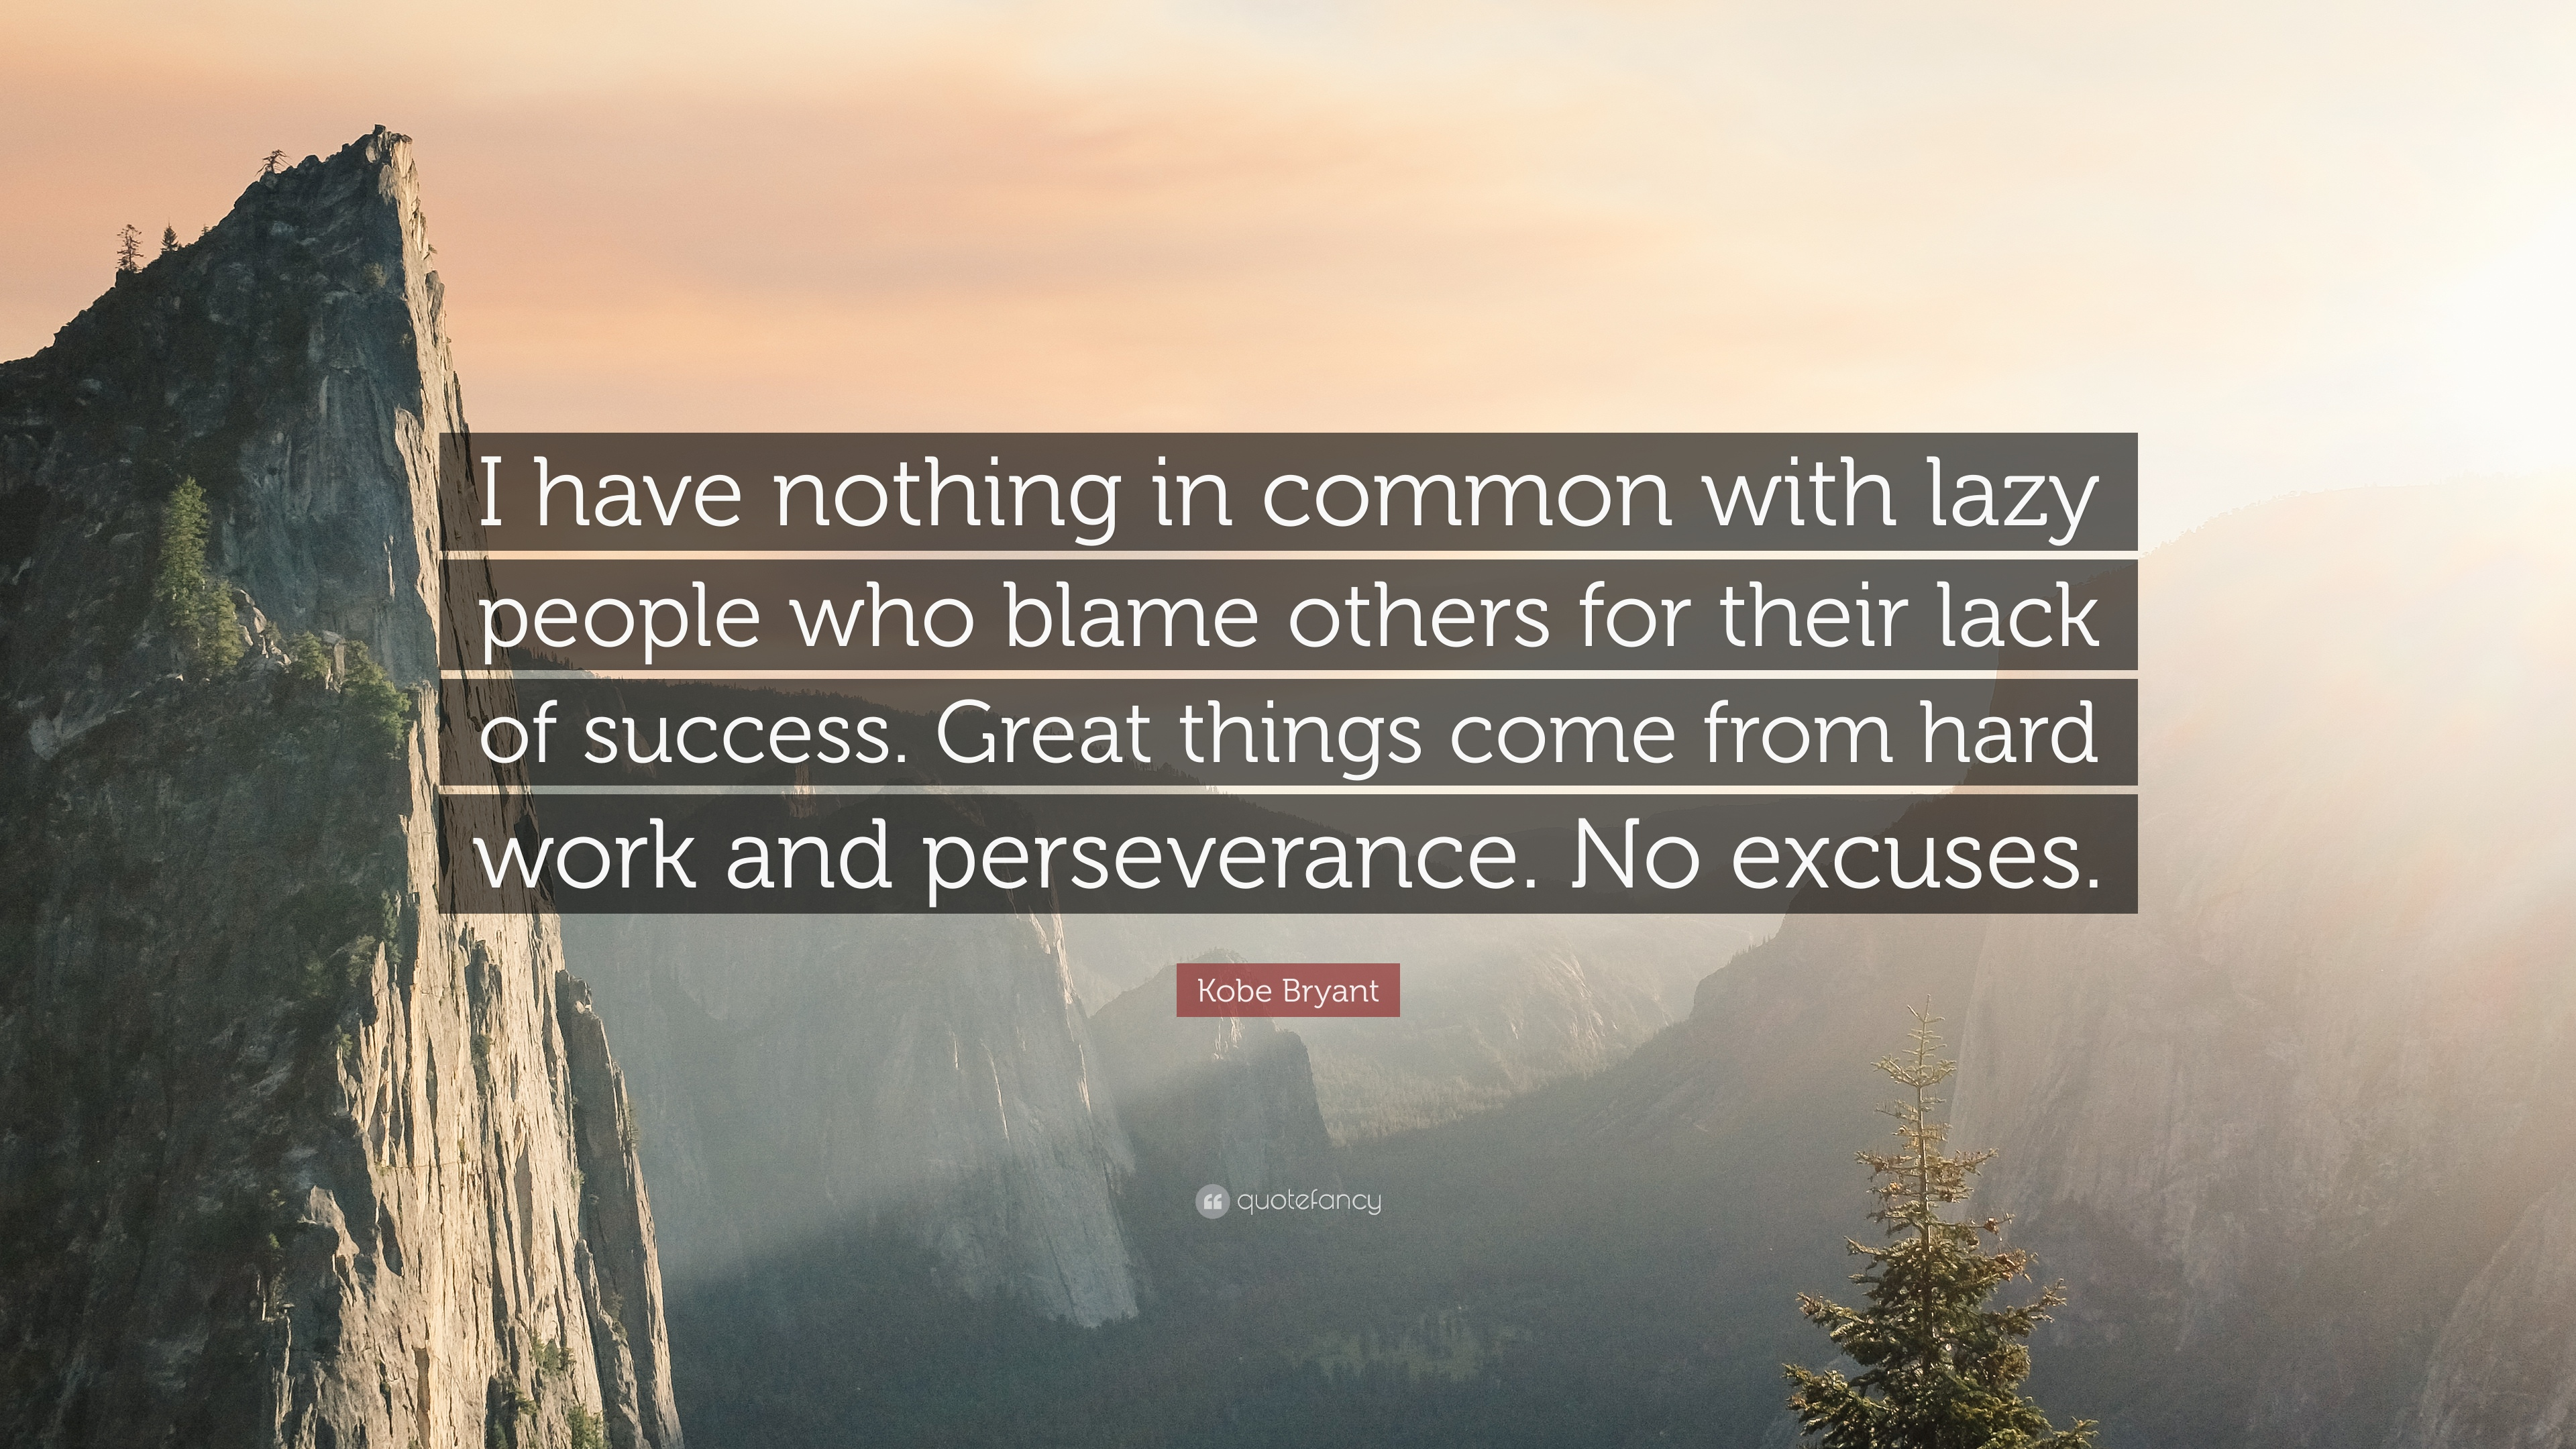 Kobe Bryant Quote Wallpaper Kobe Bryant Quote I Have Nothing In Common With Lazy